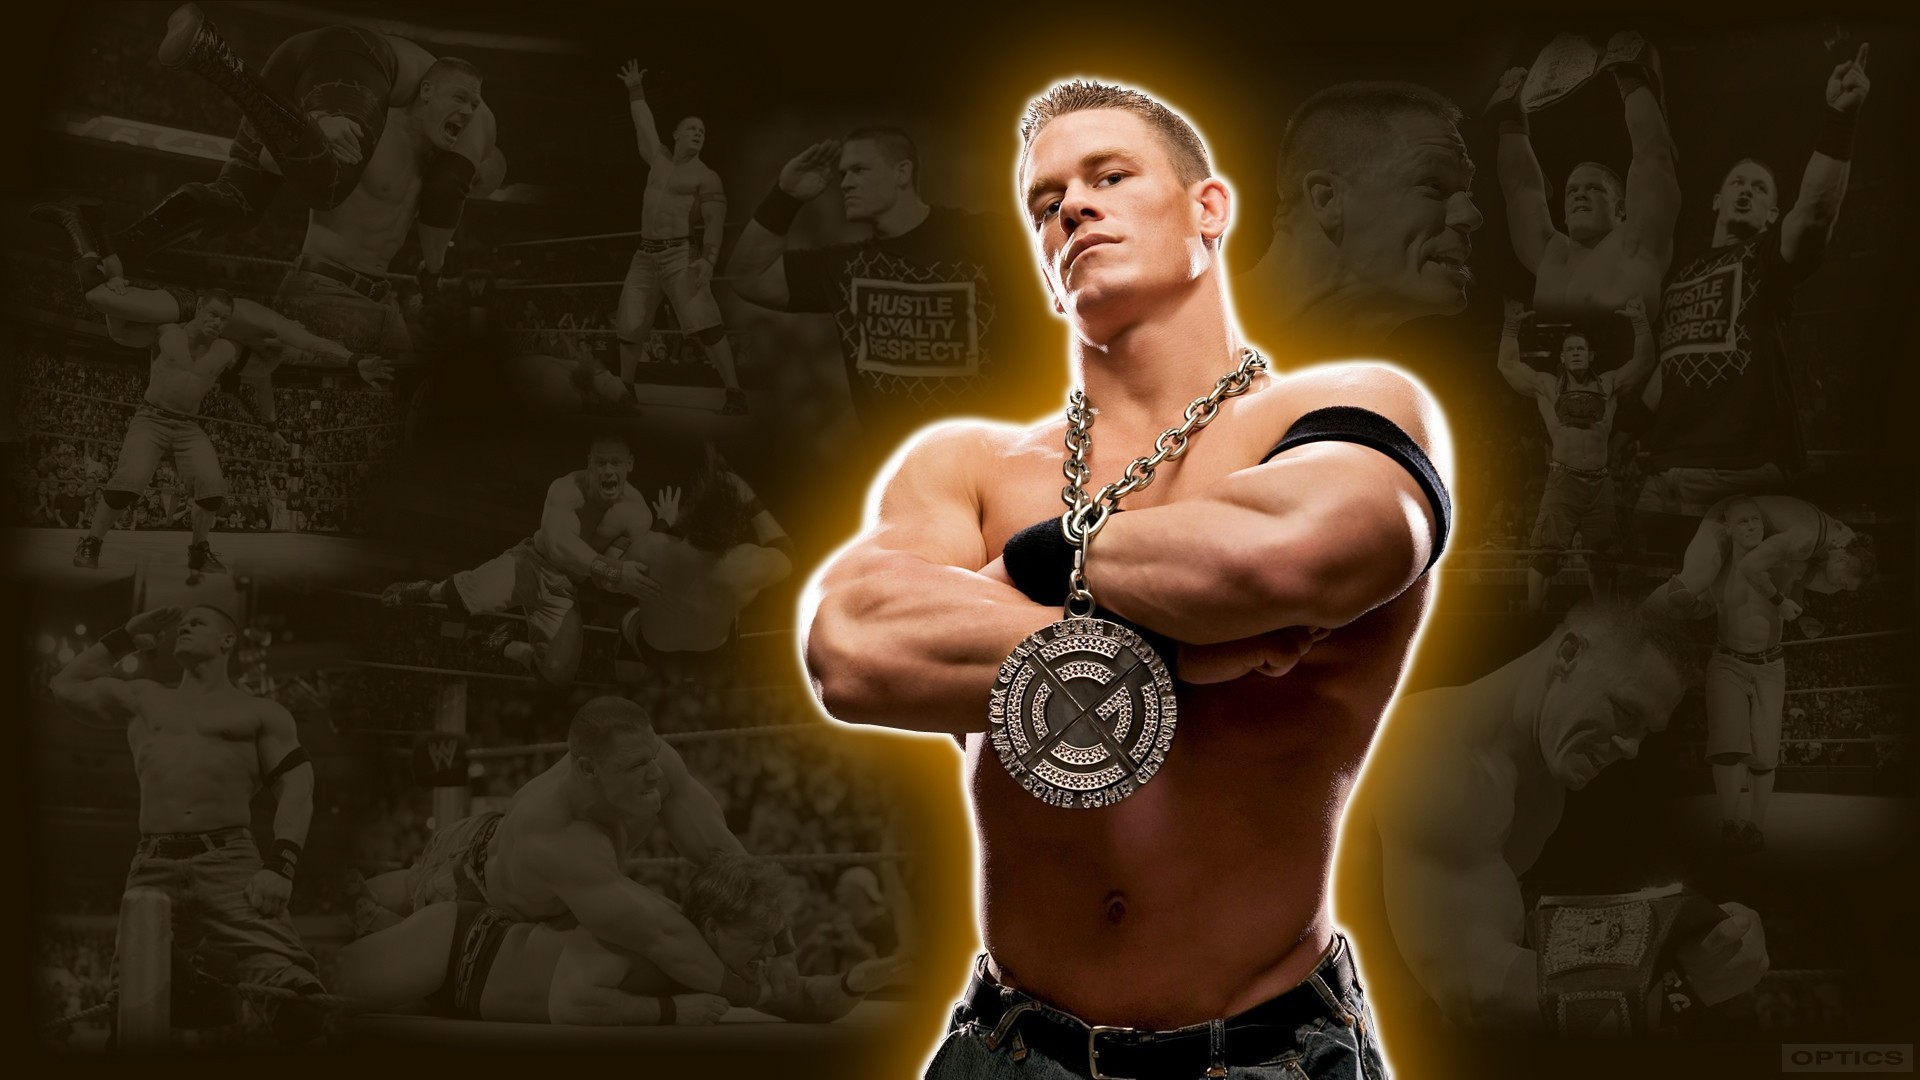 Wwe John Cena Wallpaper 1640